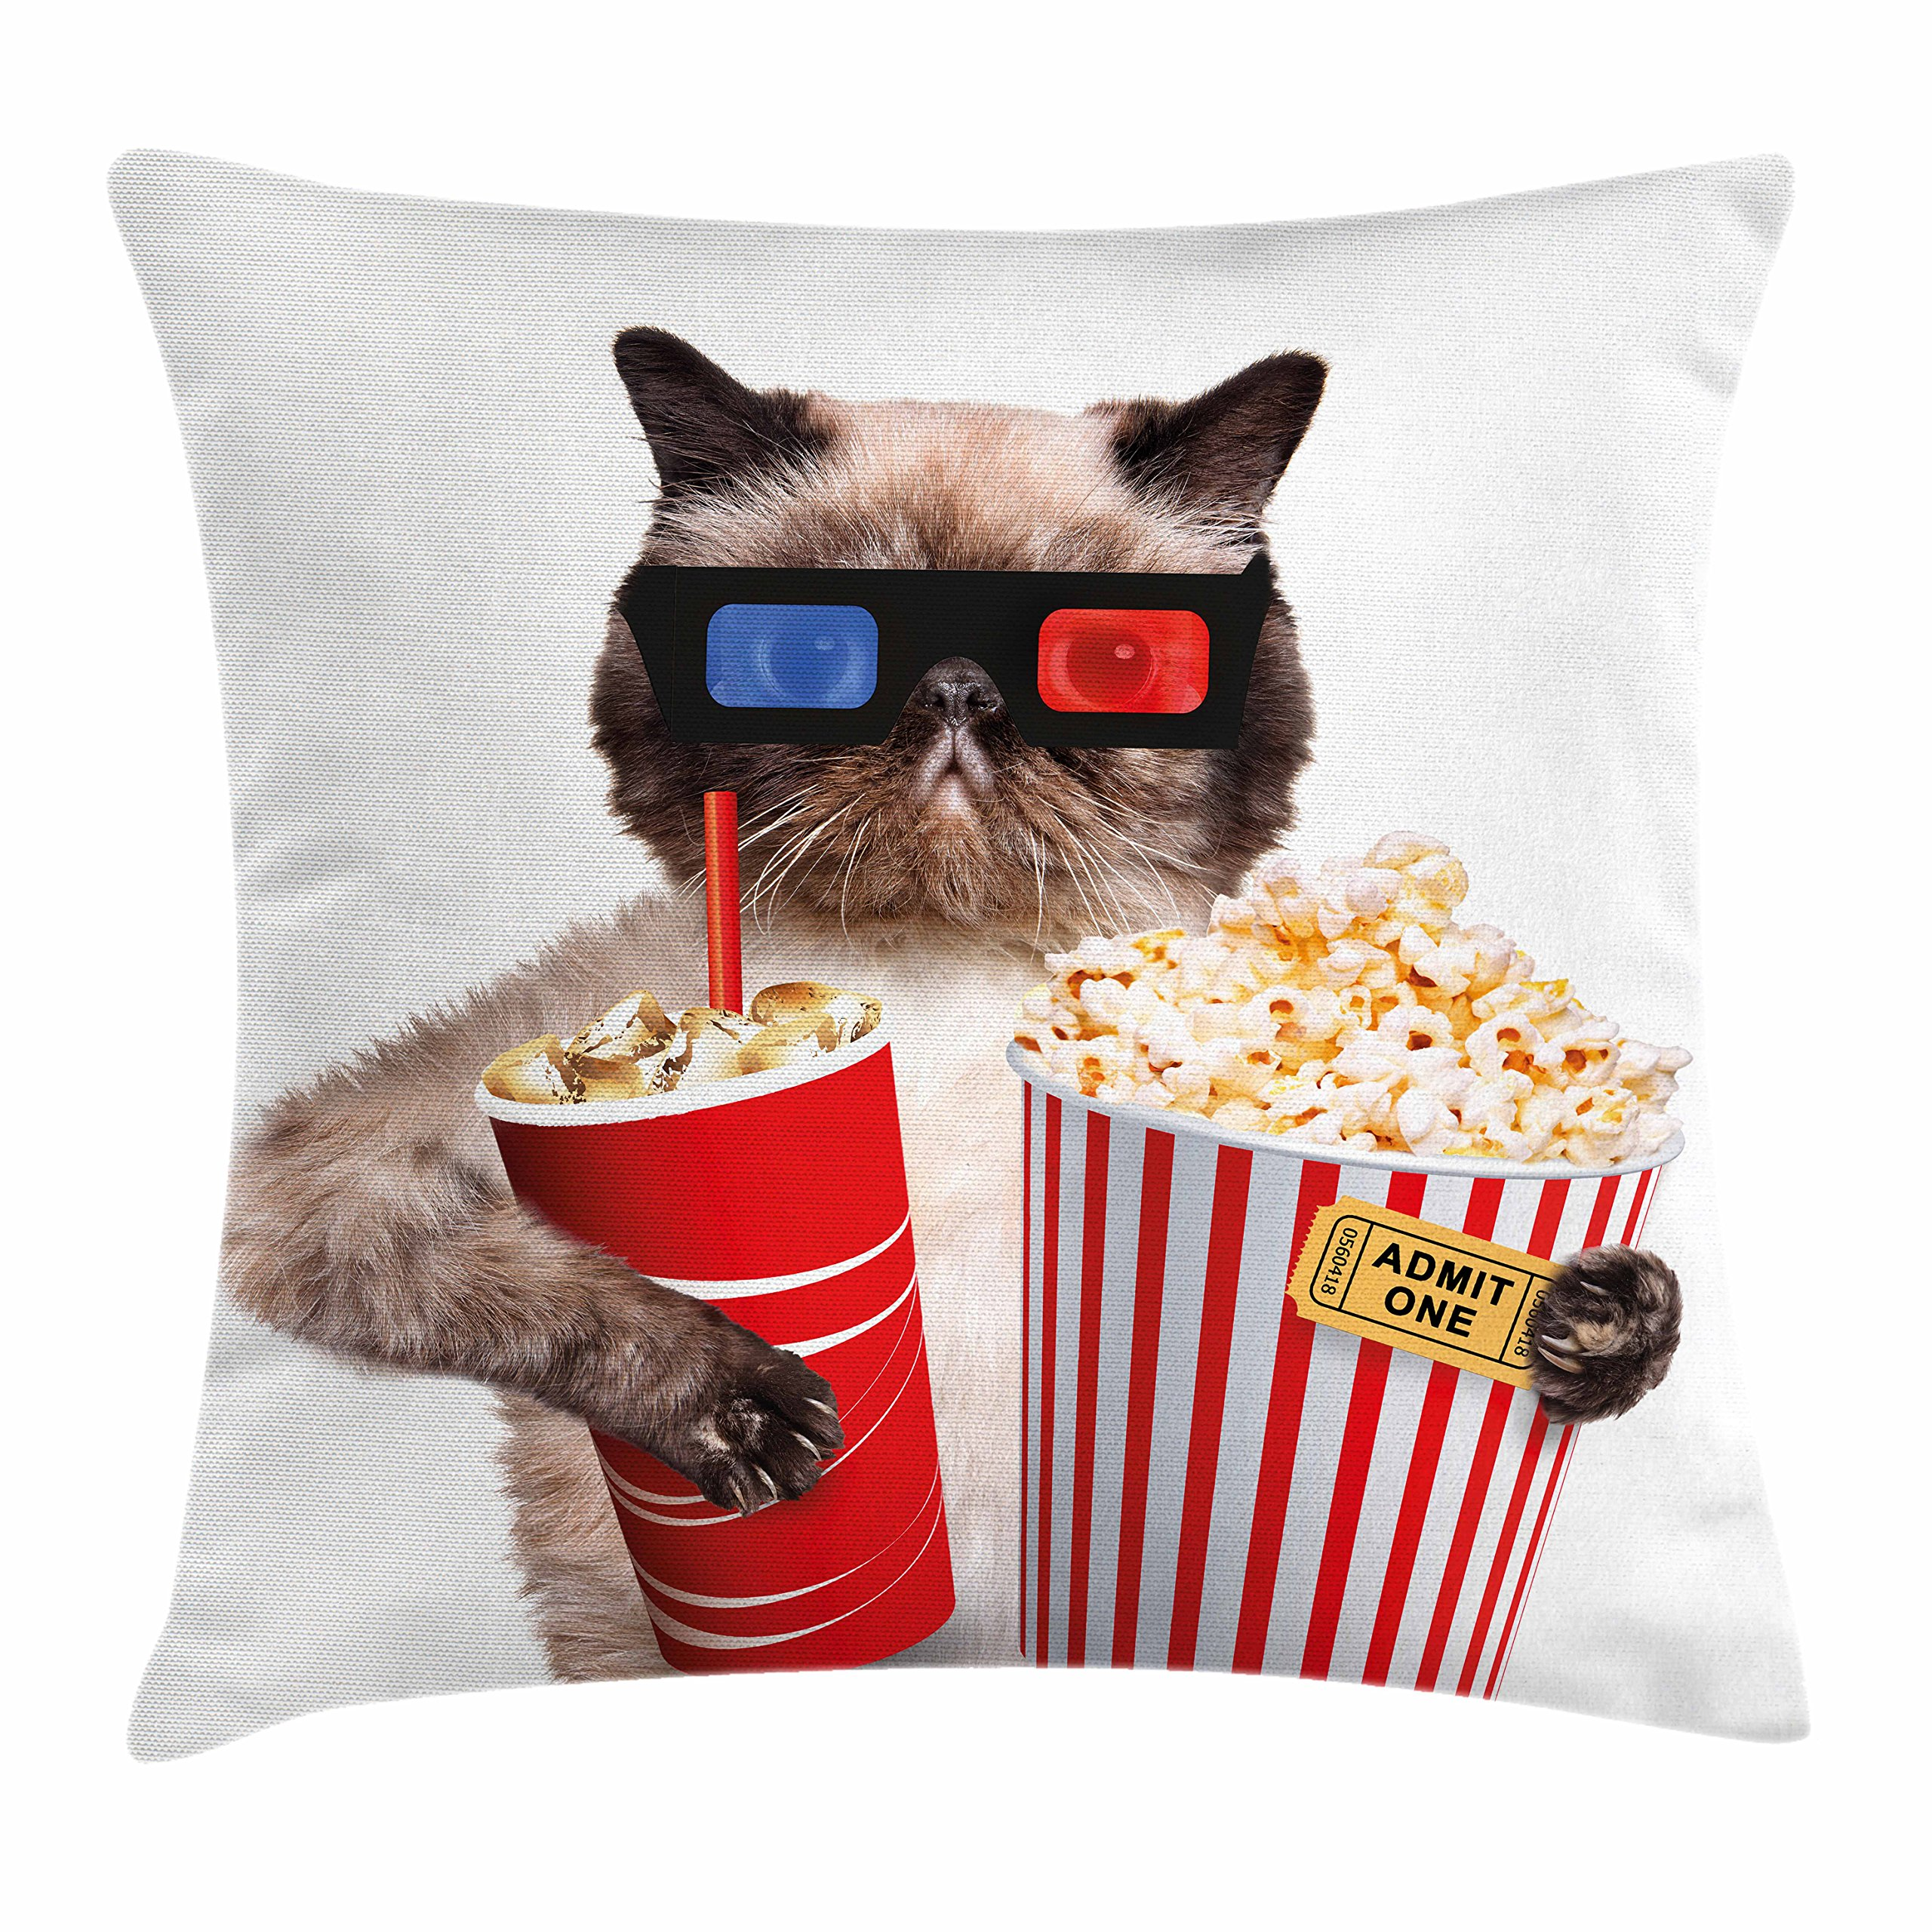 Ambesonne Movie Theater Throw Pillow Cushion Cover, Cat with Popcorn and Drink Watching Movie Glasses Entertainment Cinema Fun, Decorative Square Accent Pillow Case, 28 X 28 inches, Multicolor